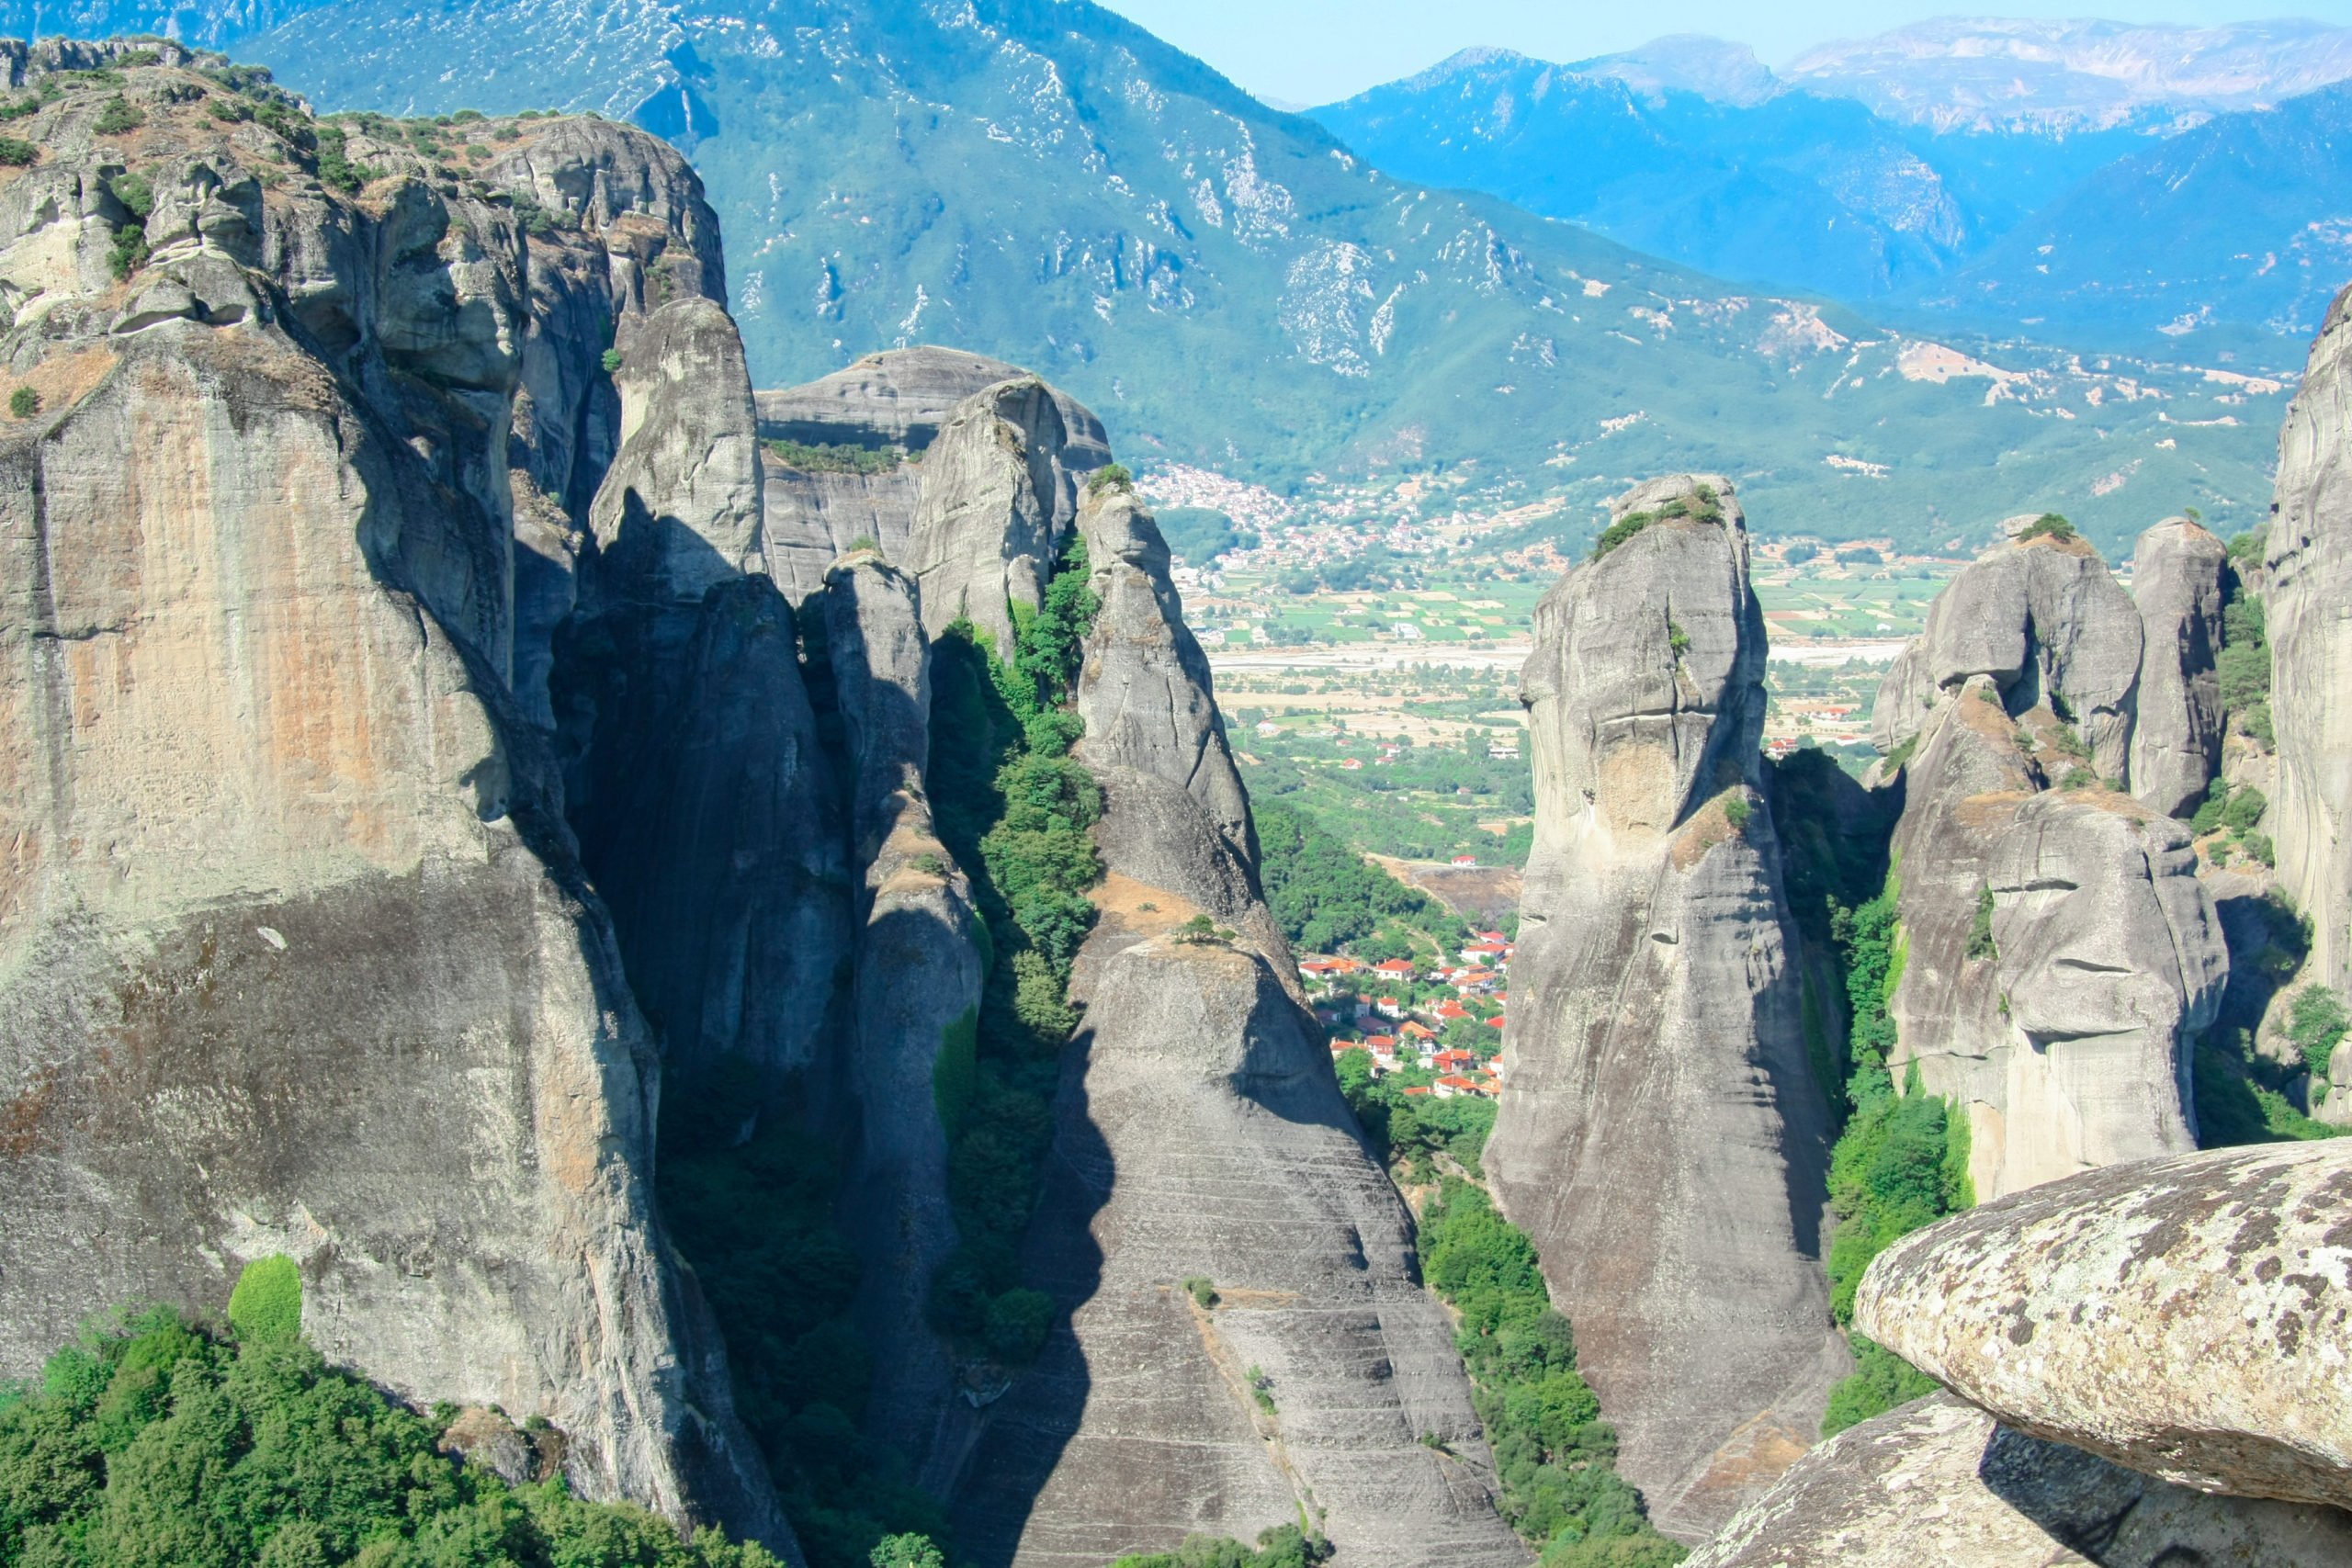 Enjoy The Beautiful Views Hiking The Kastraki Trails On The Meteora's Hermit Cave Half Day Hiking Tour